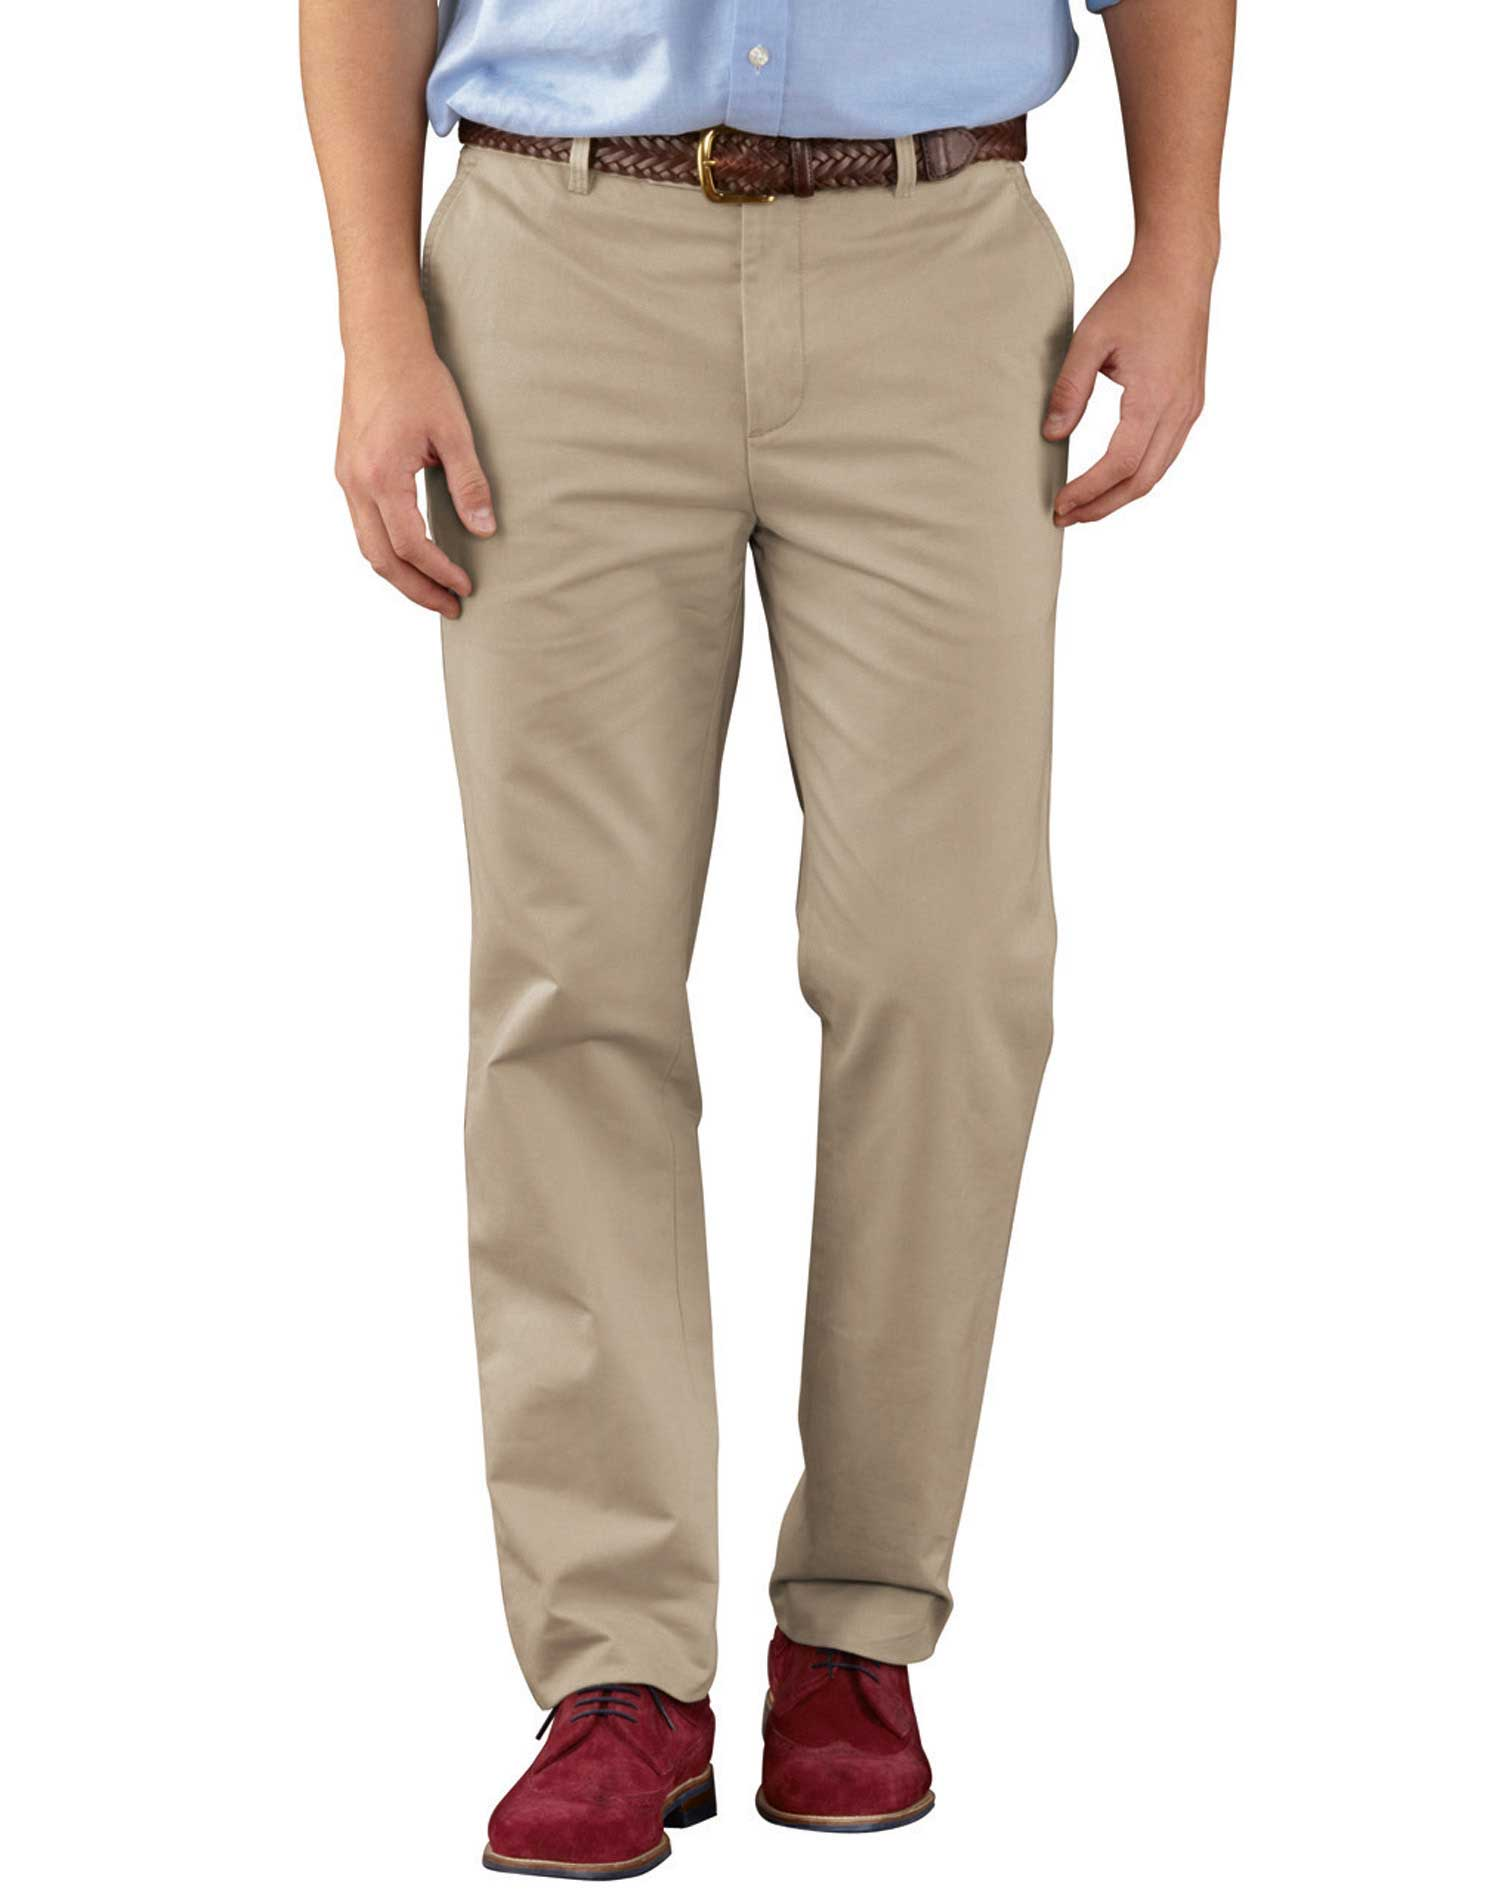 Stone Slim Fit Flat Front Weekend Cotton Chino Trousers Size W38 L32 by Charles Tyrwhitt